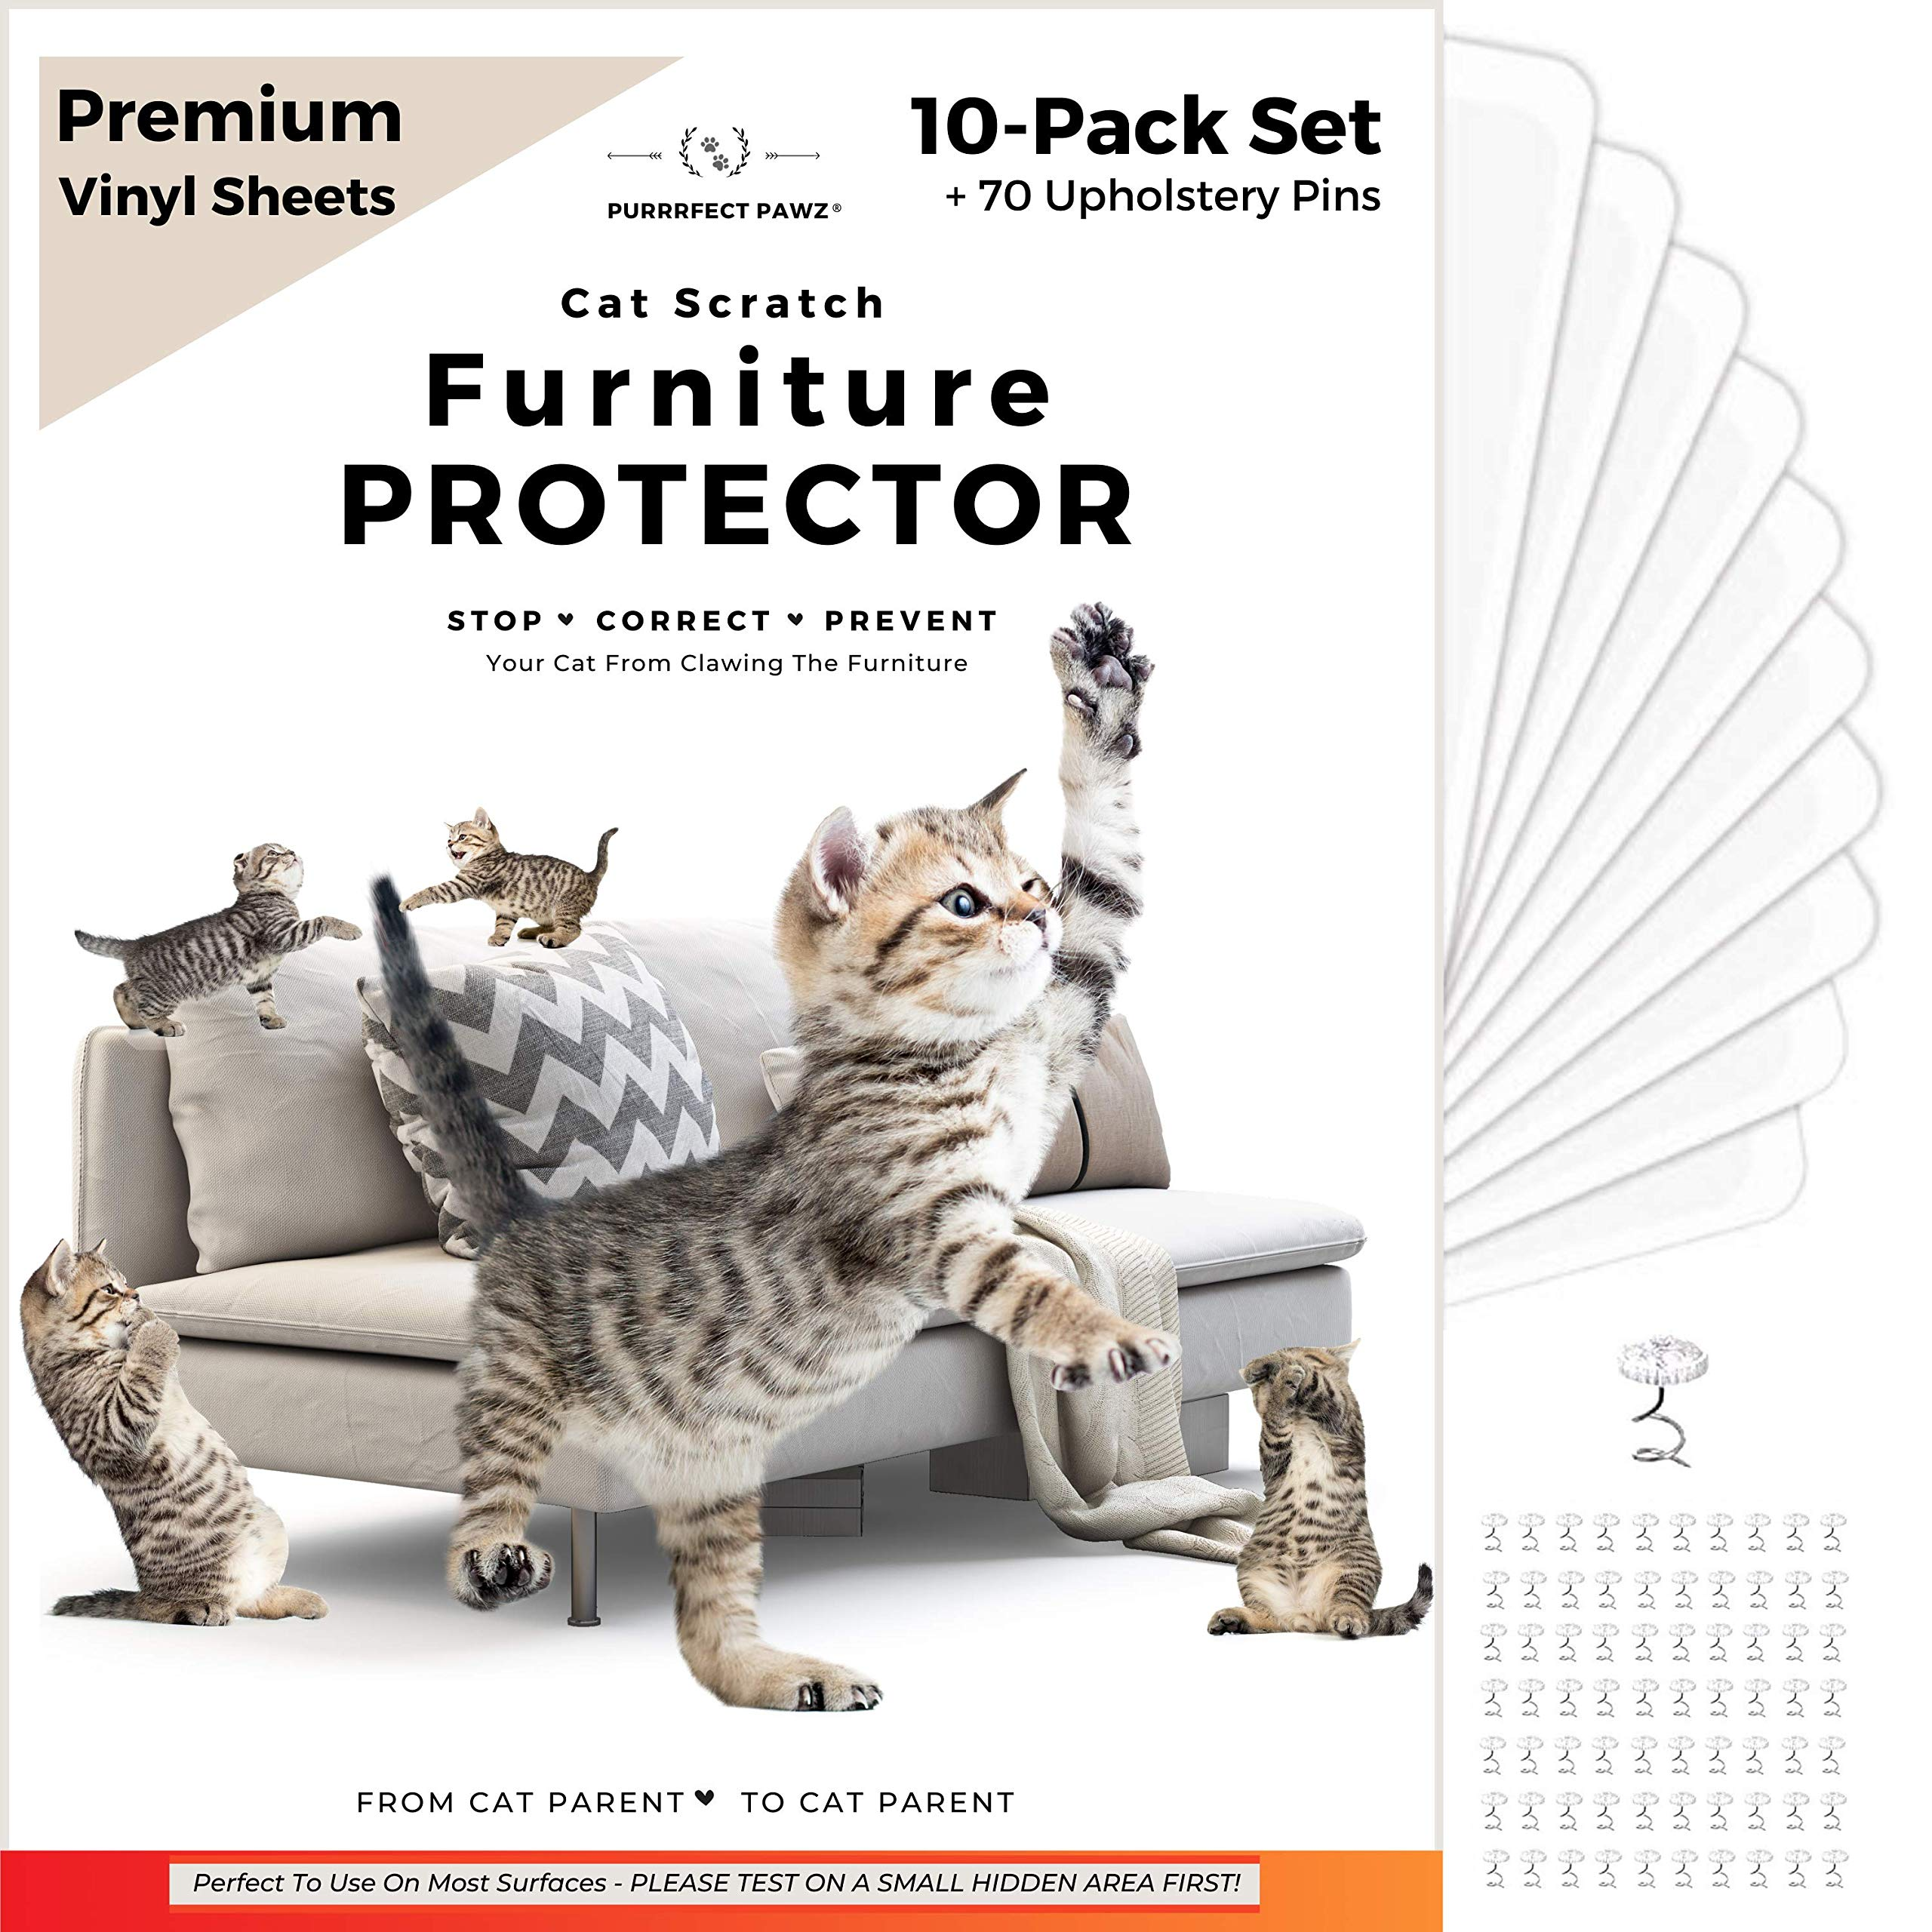 PURRRFECT PAWZ, Cat Scratch Furniture Protector, Couch Protectors from Cats Scratching, Anti Scratch Furniture Protector, ...